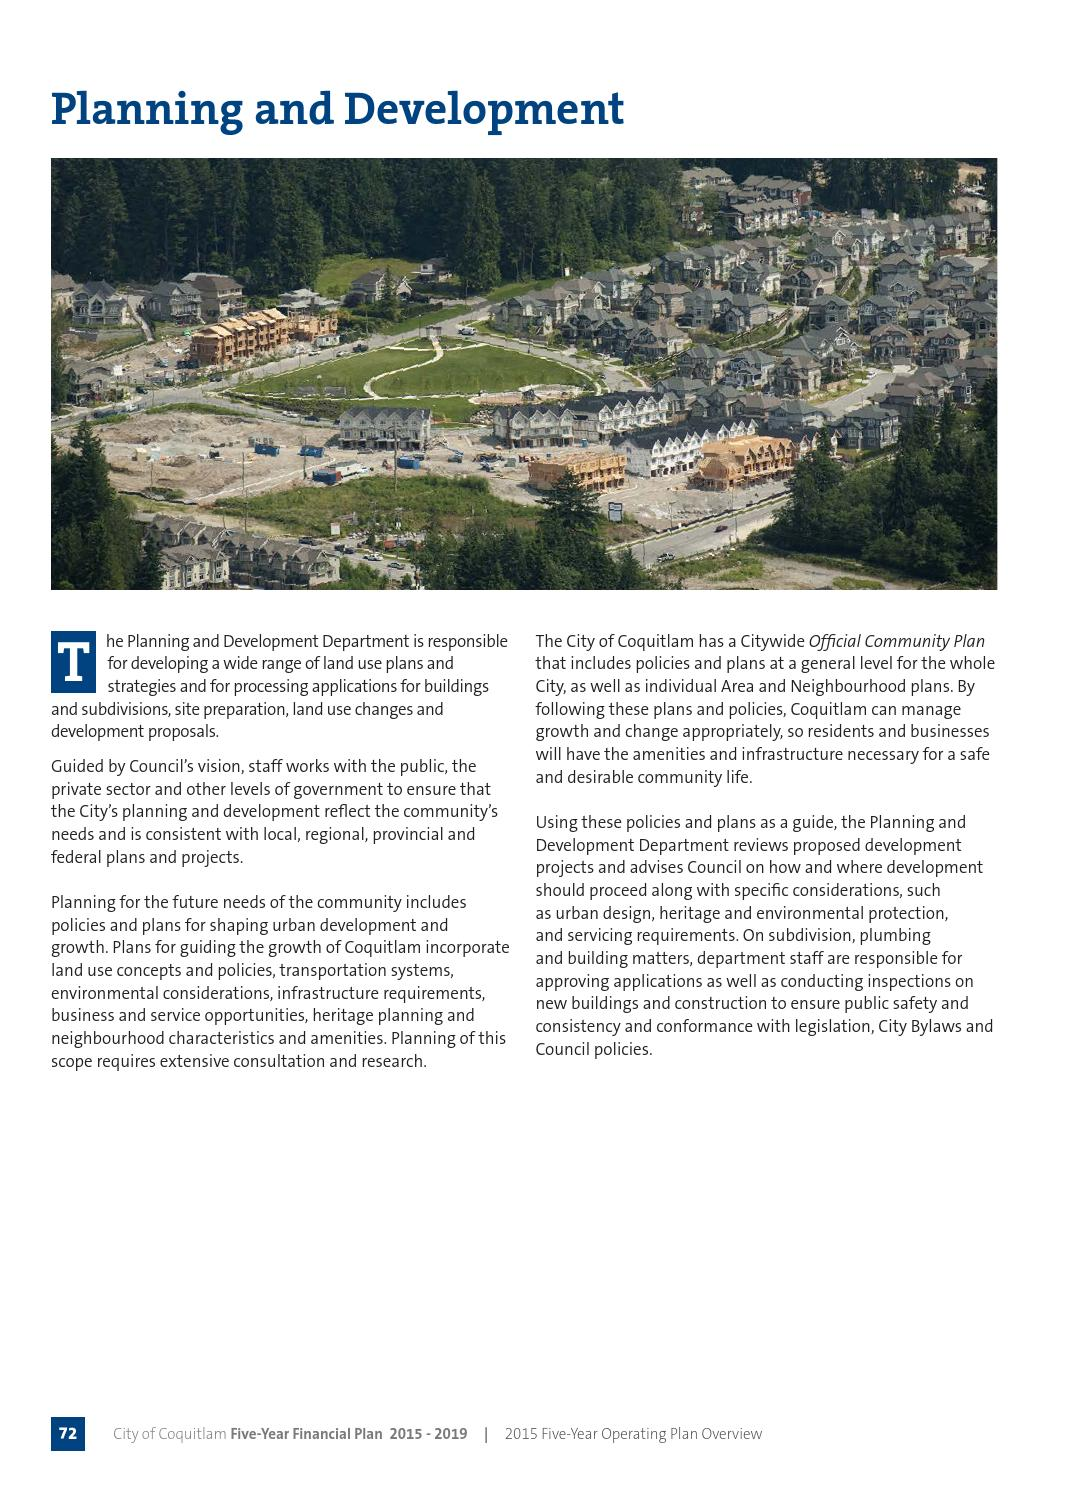 Coquitlam financial plan 2015 by City of Coquitlam - issuu